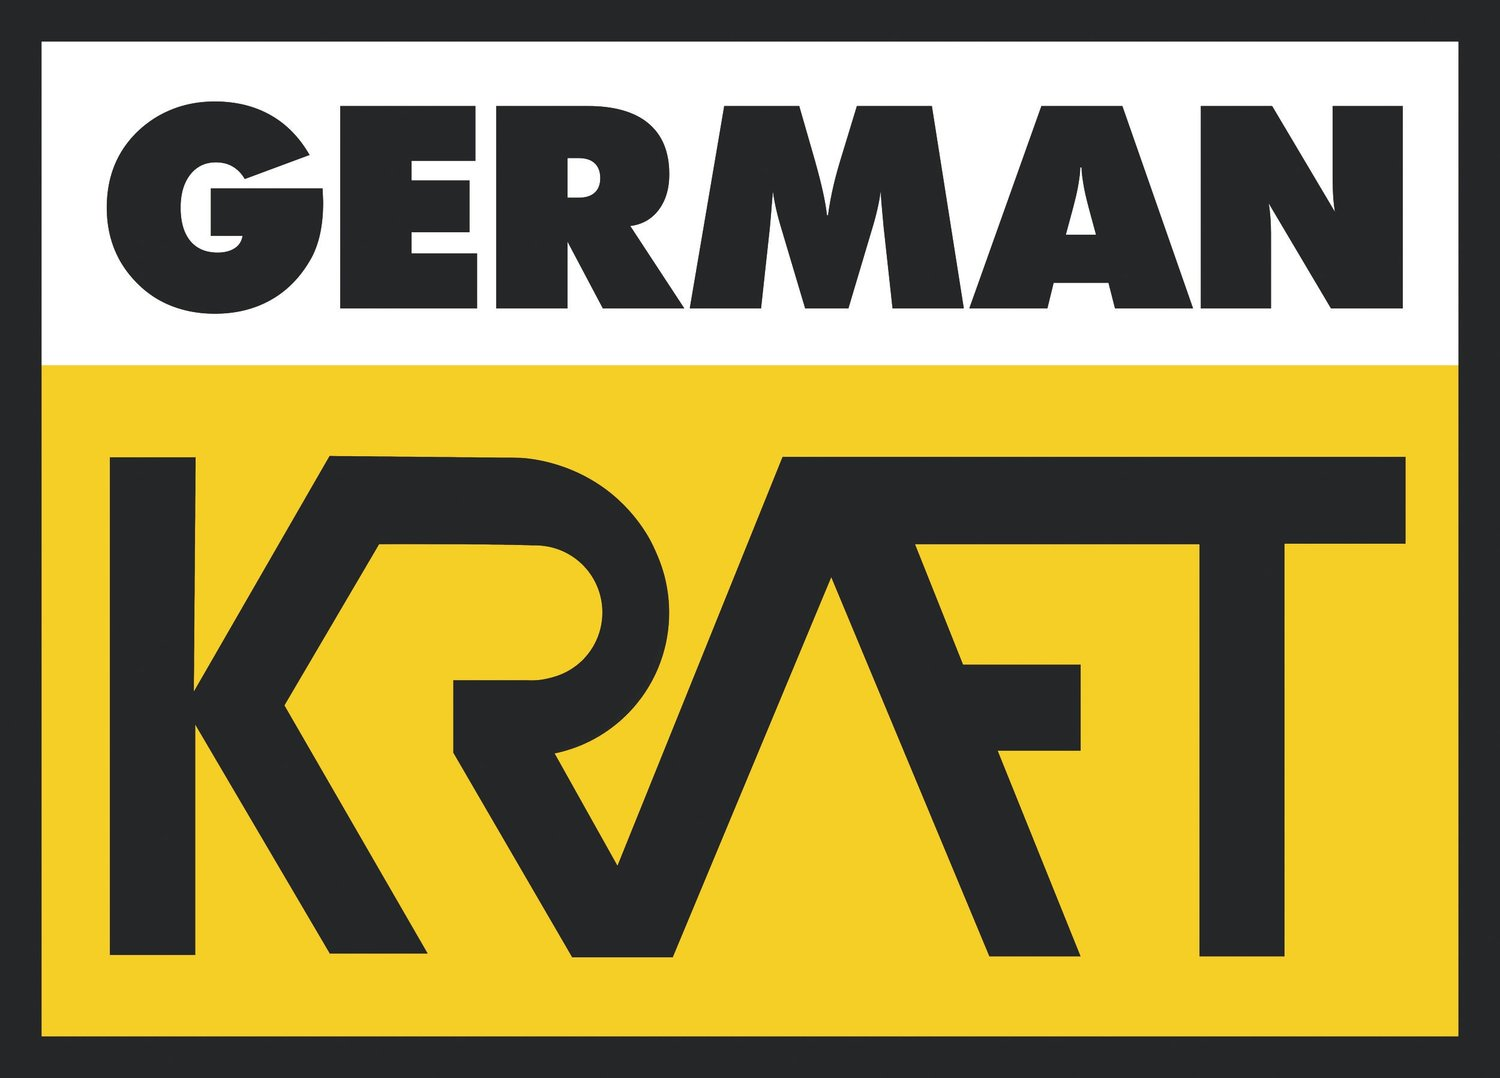 GERMAN KRAFT BREWERY